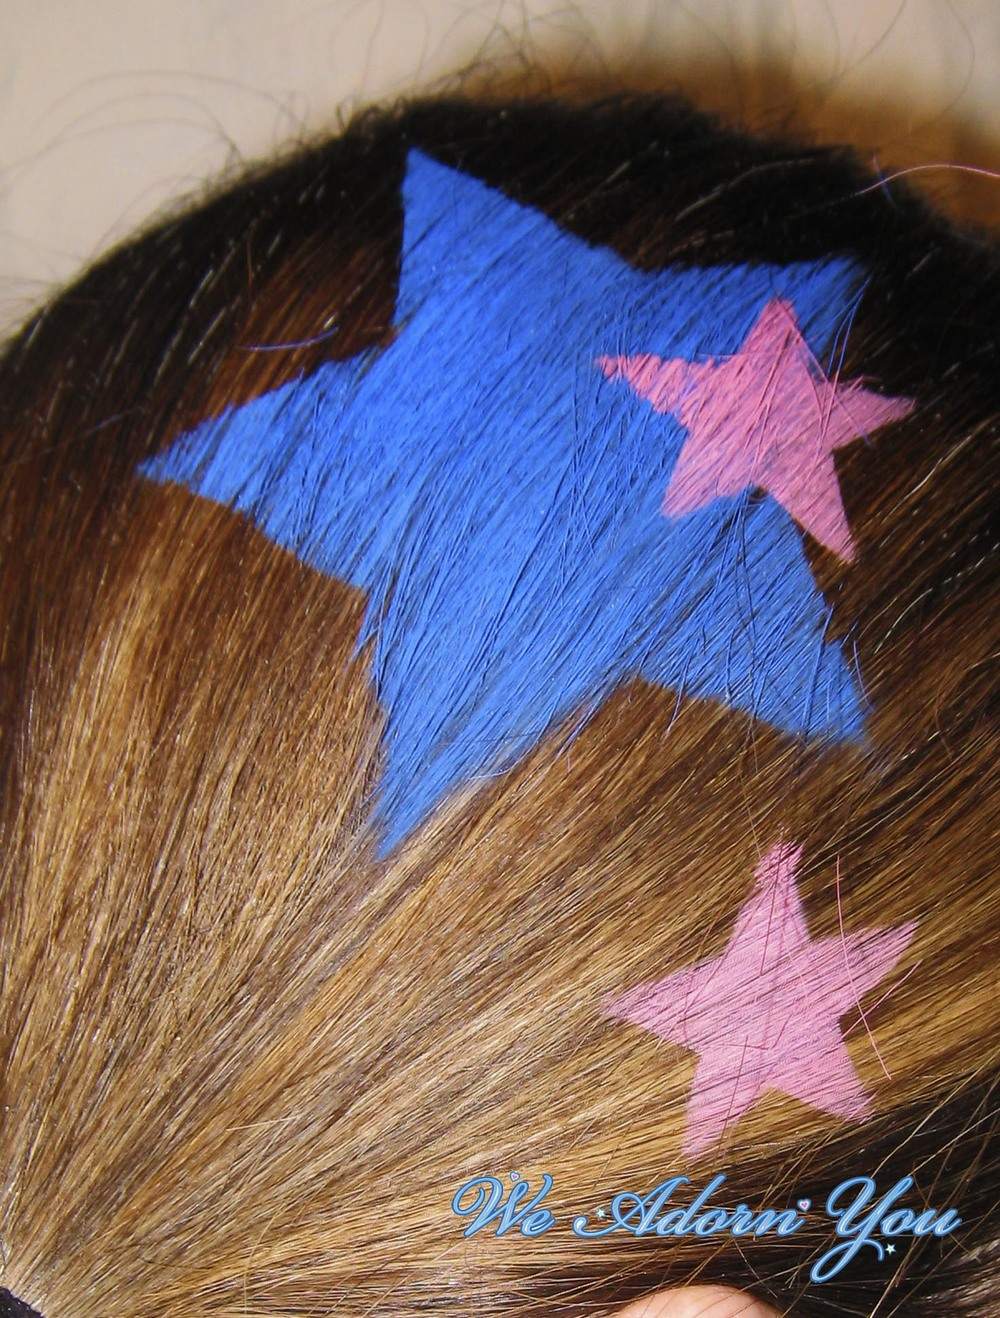 Hair Airbrush Multi Stars - We Adorn You.jpg